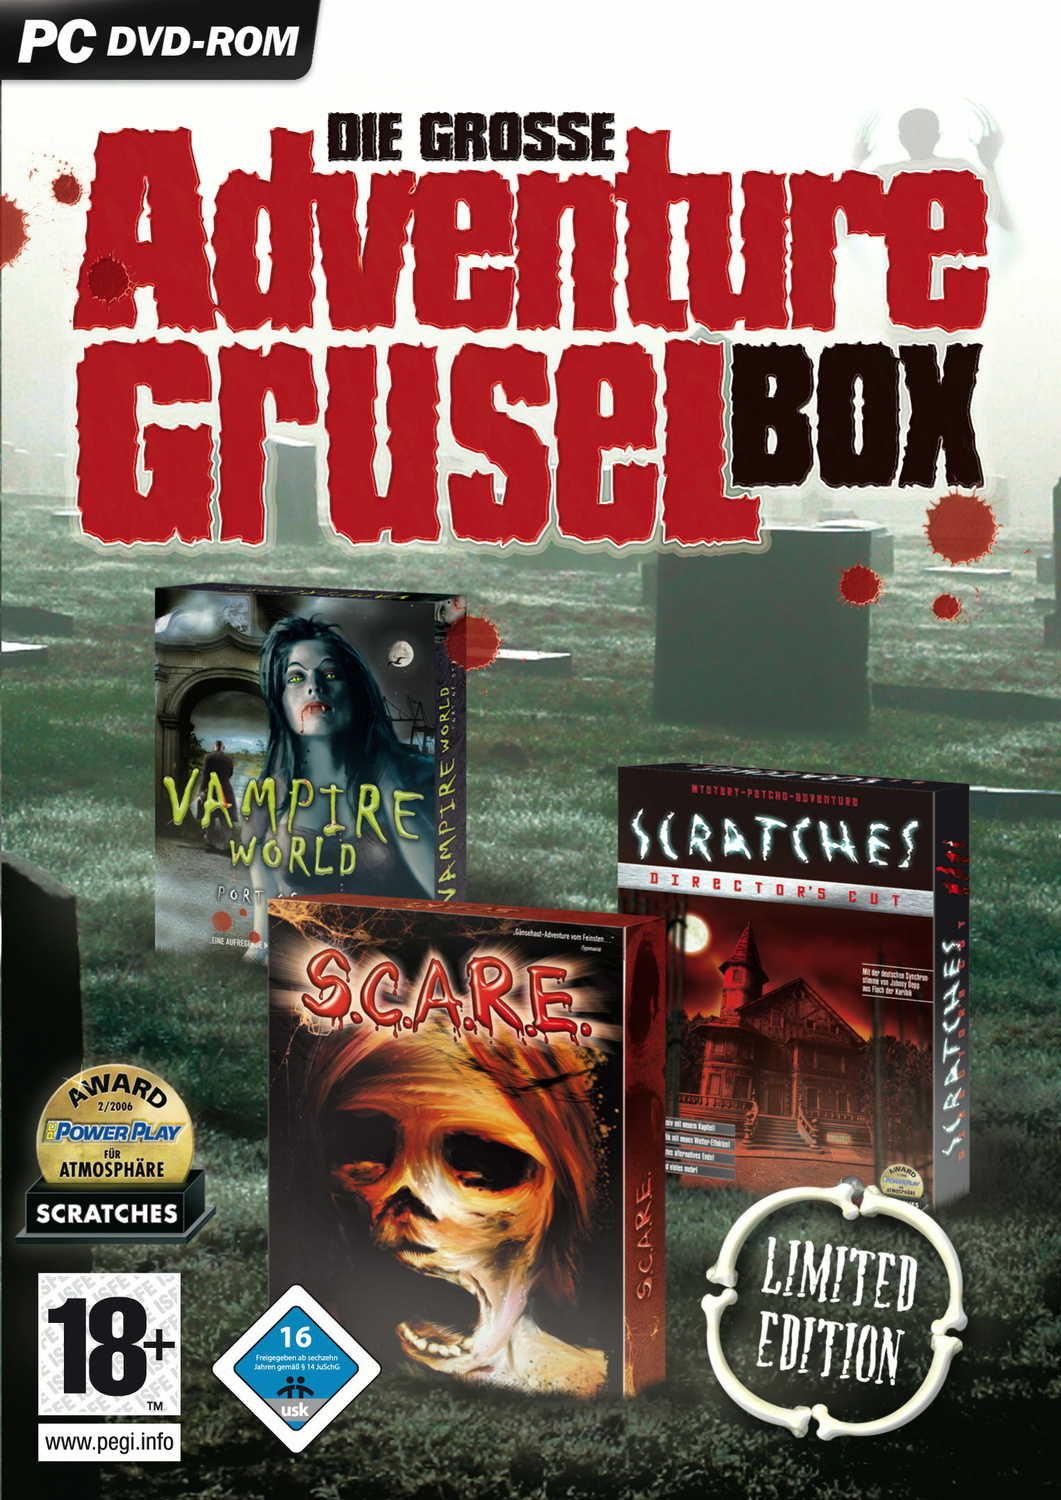 Die Grosse Adventure-Grusel-Box